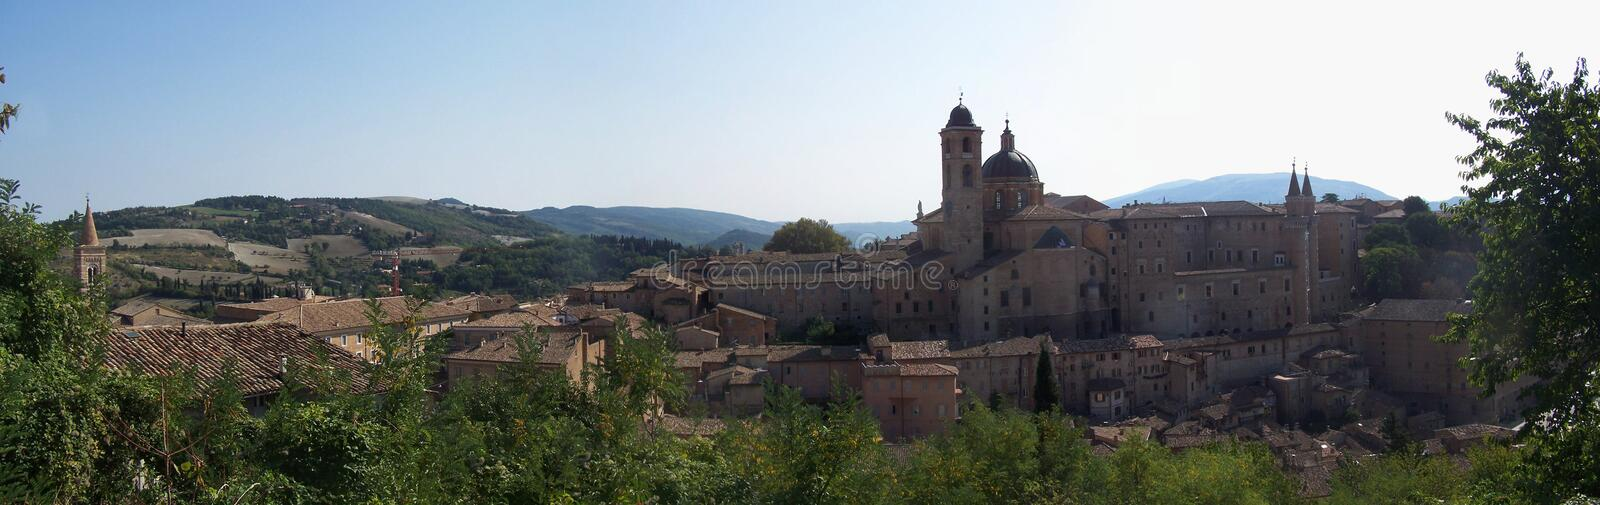 Download A View Of The Town Of Urbino Stock Photo - Image of historical, medieval: 29914646